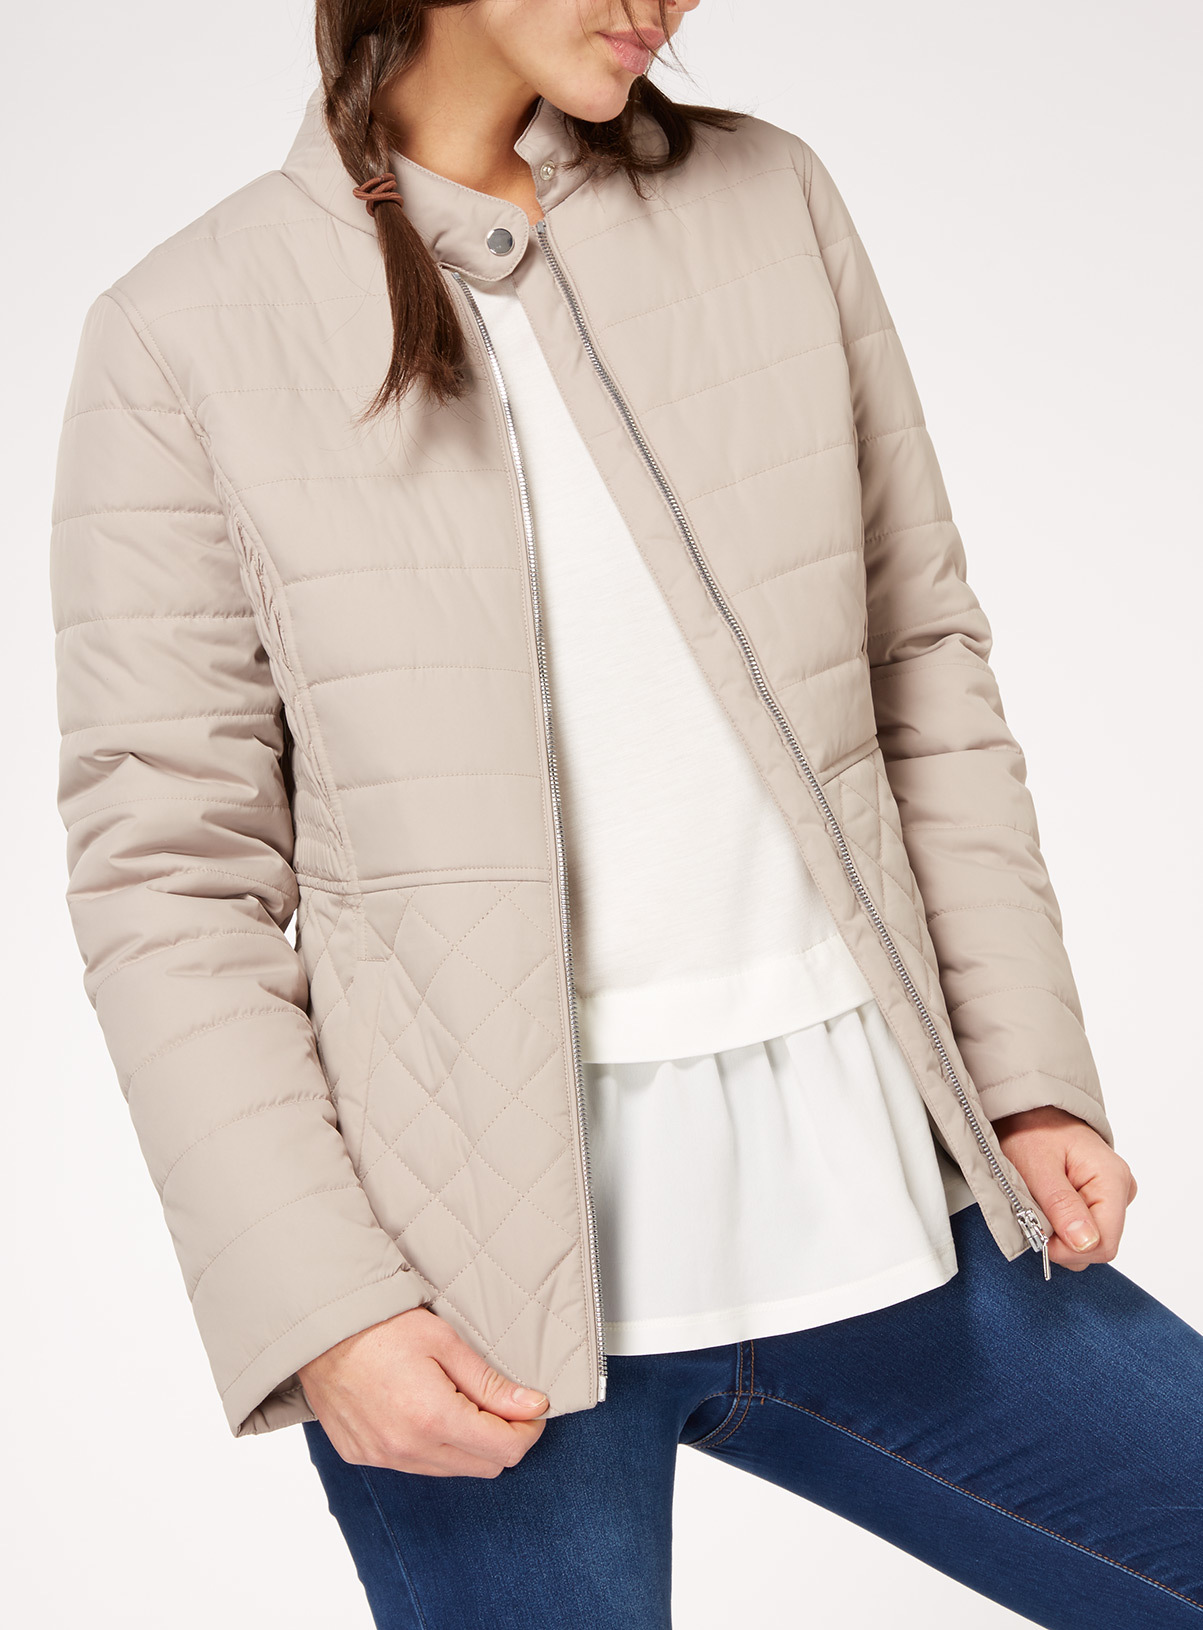 Womens Lightweight Quilted Jacket | Tu clothing : lightweight quilted coat - Adamdwight.com